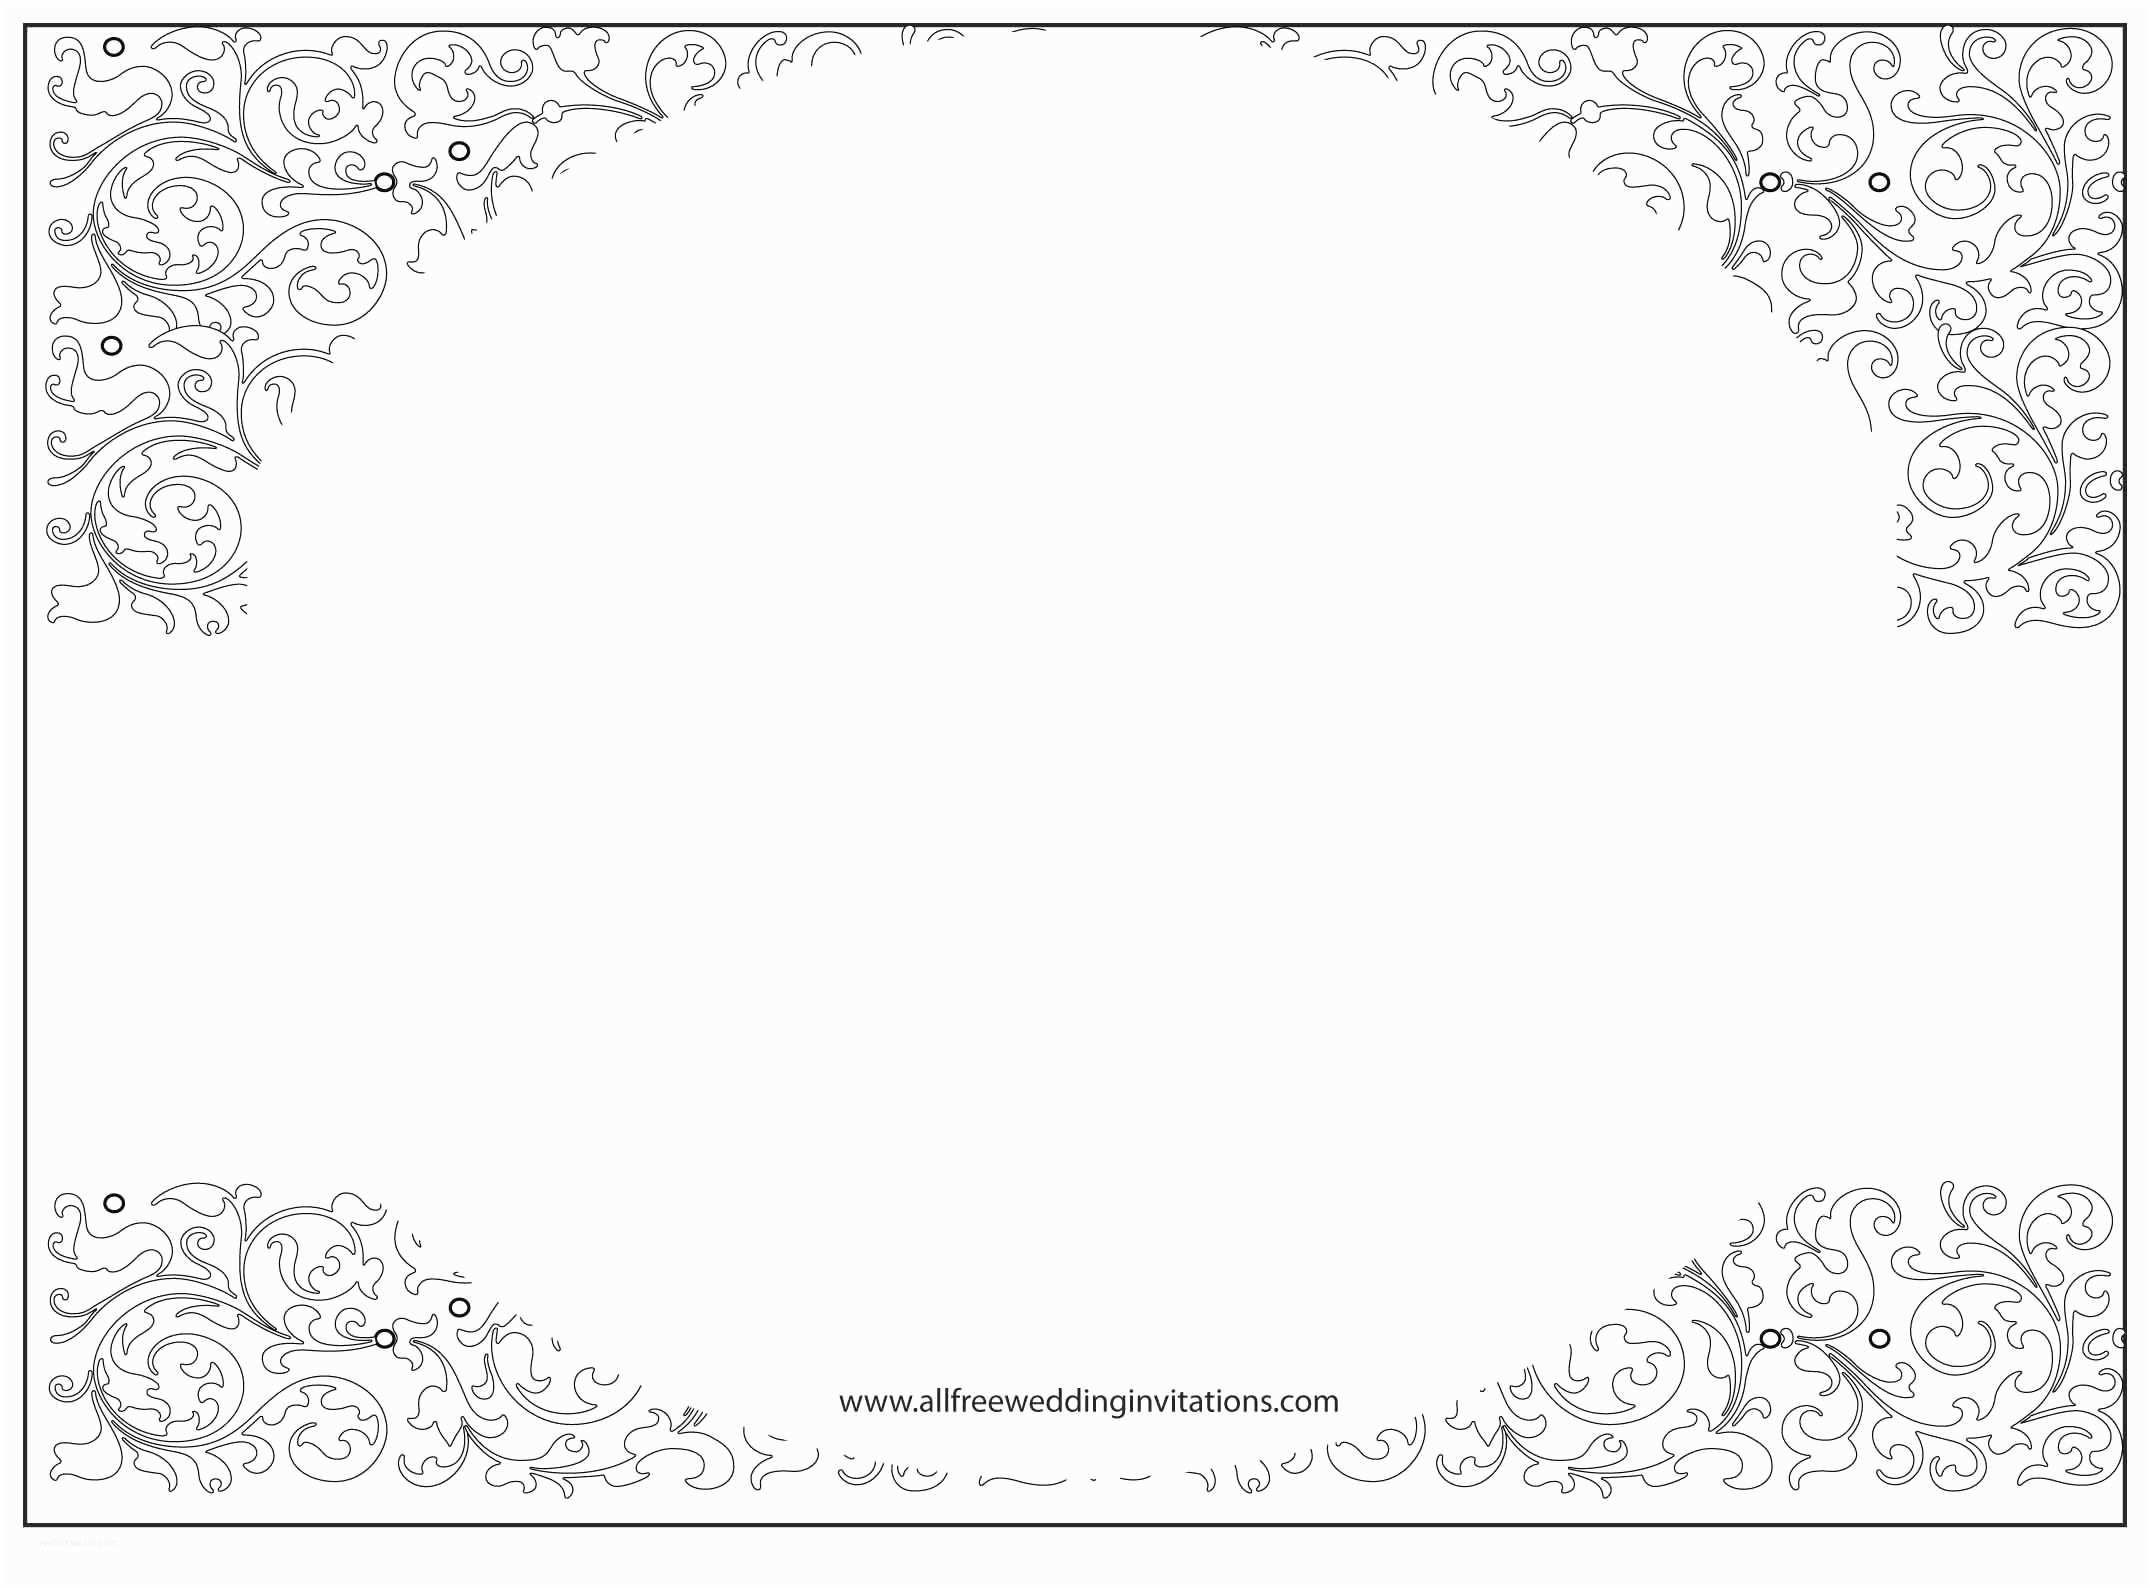 How To Design Wedding Invitations How To Make Wedding Invitations Templates Designs